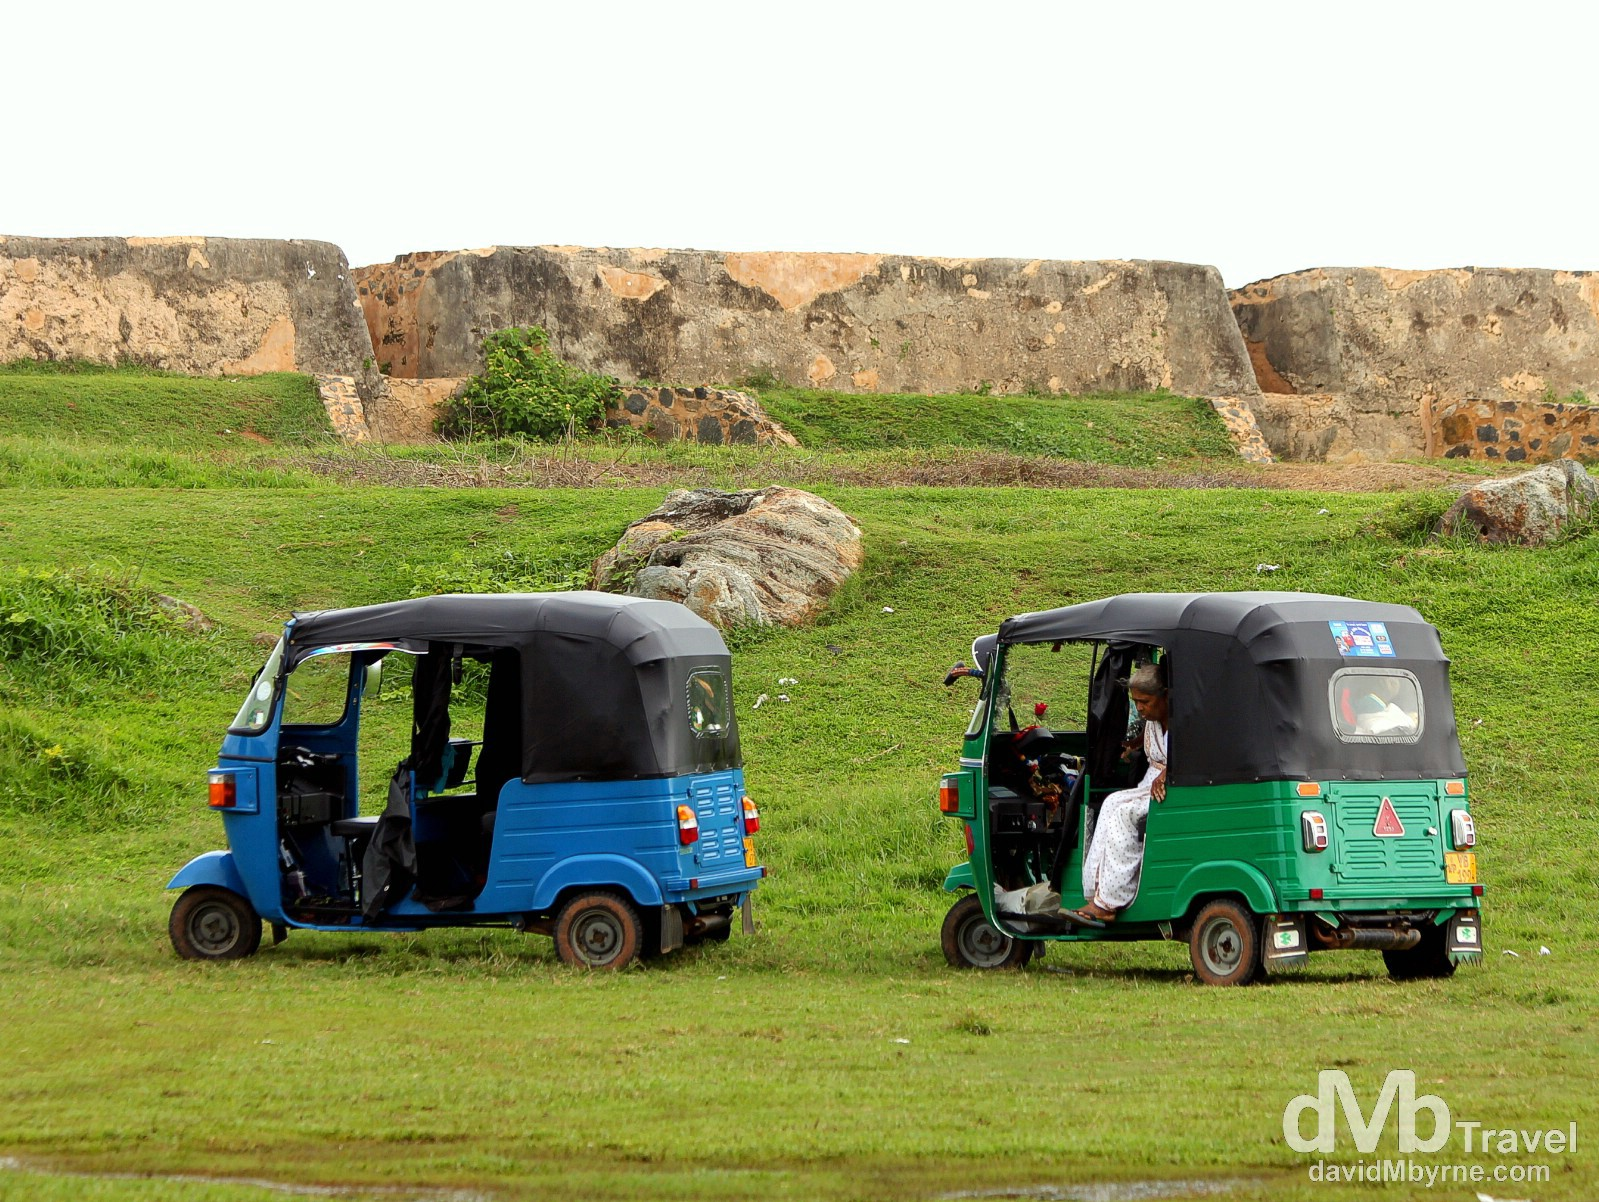 Tuk tuks in the grounds of Galle Fort, Galle, southern Sri Lanka. September 2nd 2012.